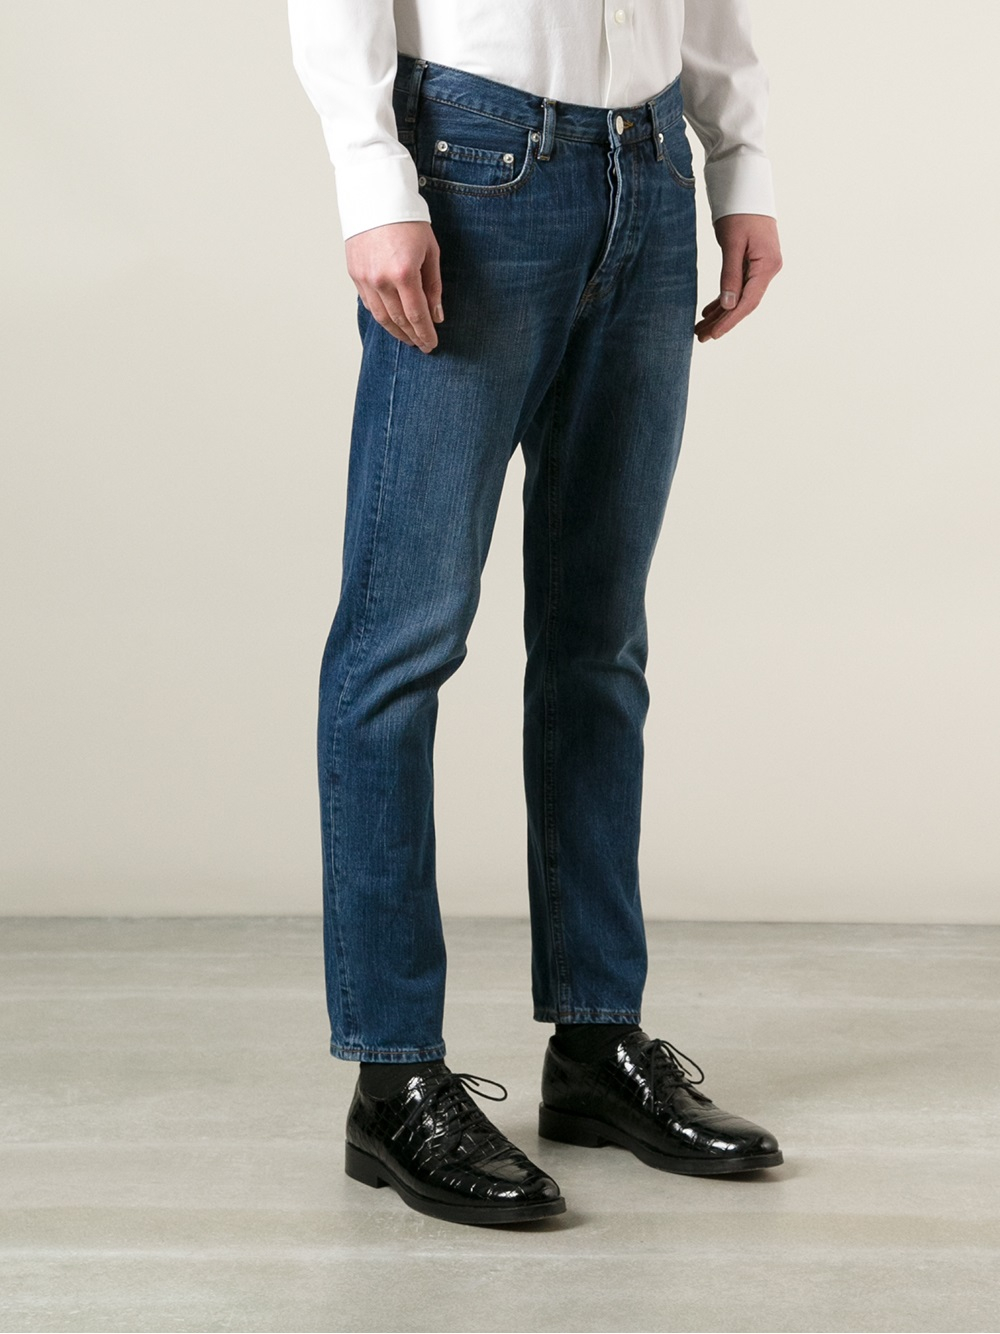 lyst acne studios town vintage tapered jeans in blue for men. Black Bedroom Furniture Sets. Home Design Ideas